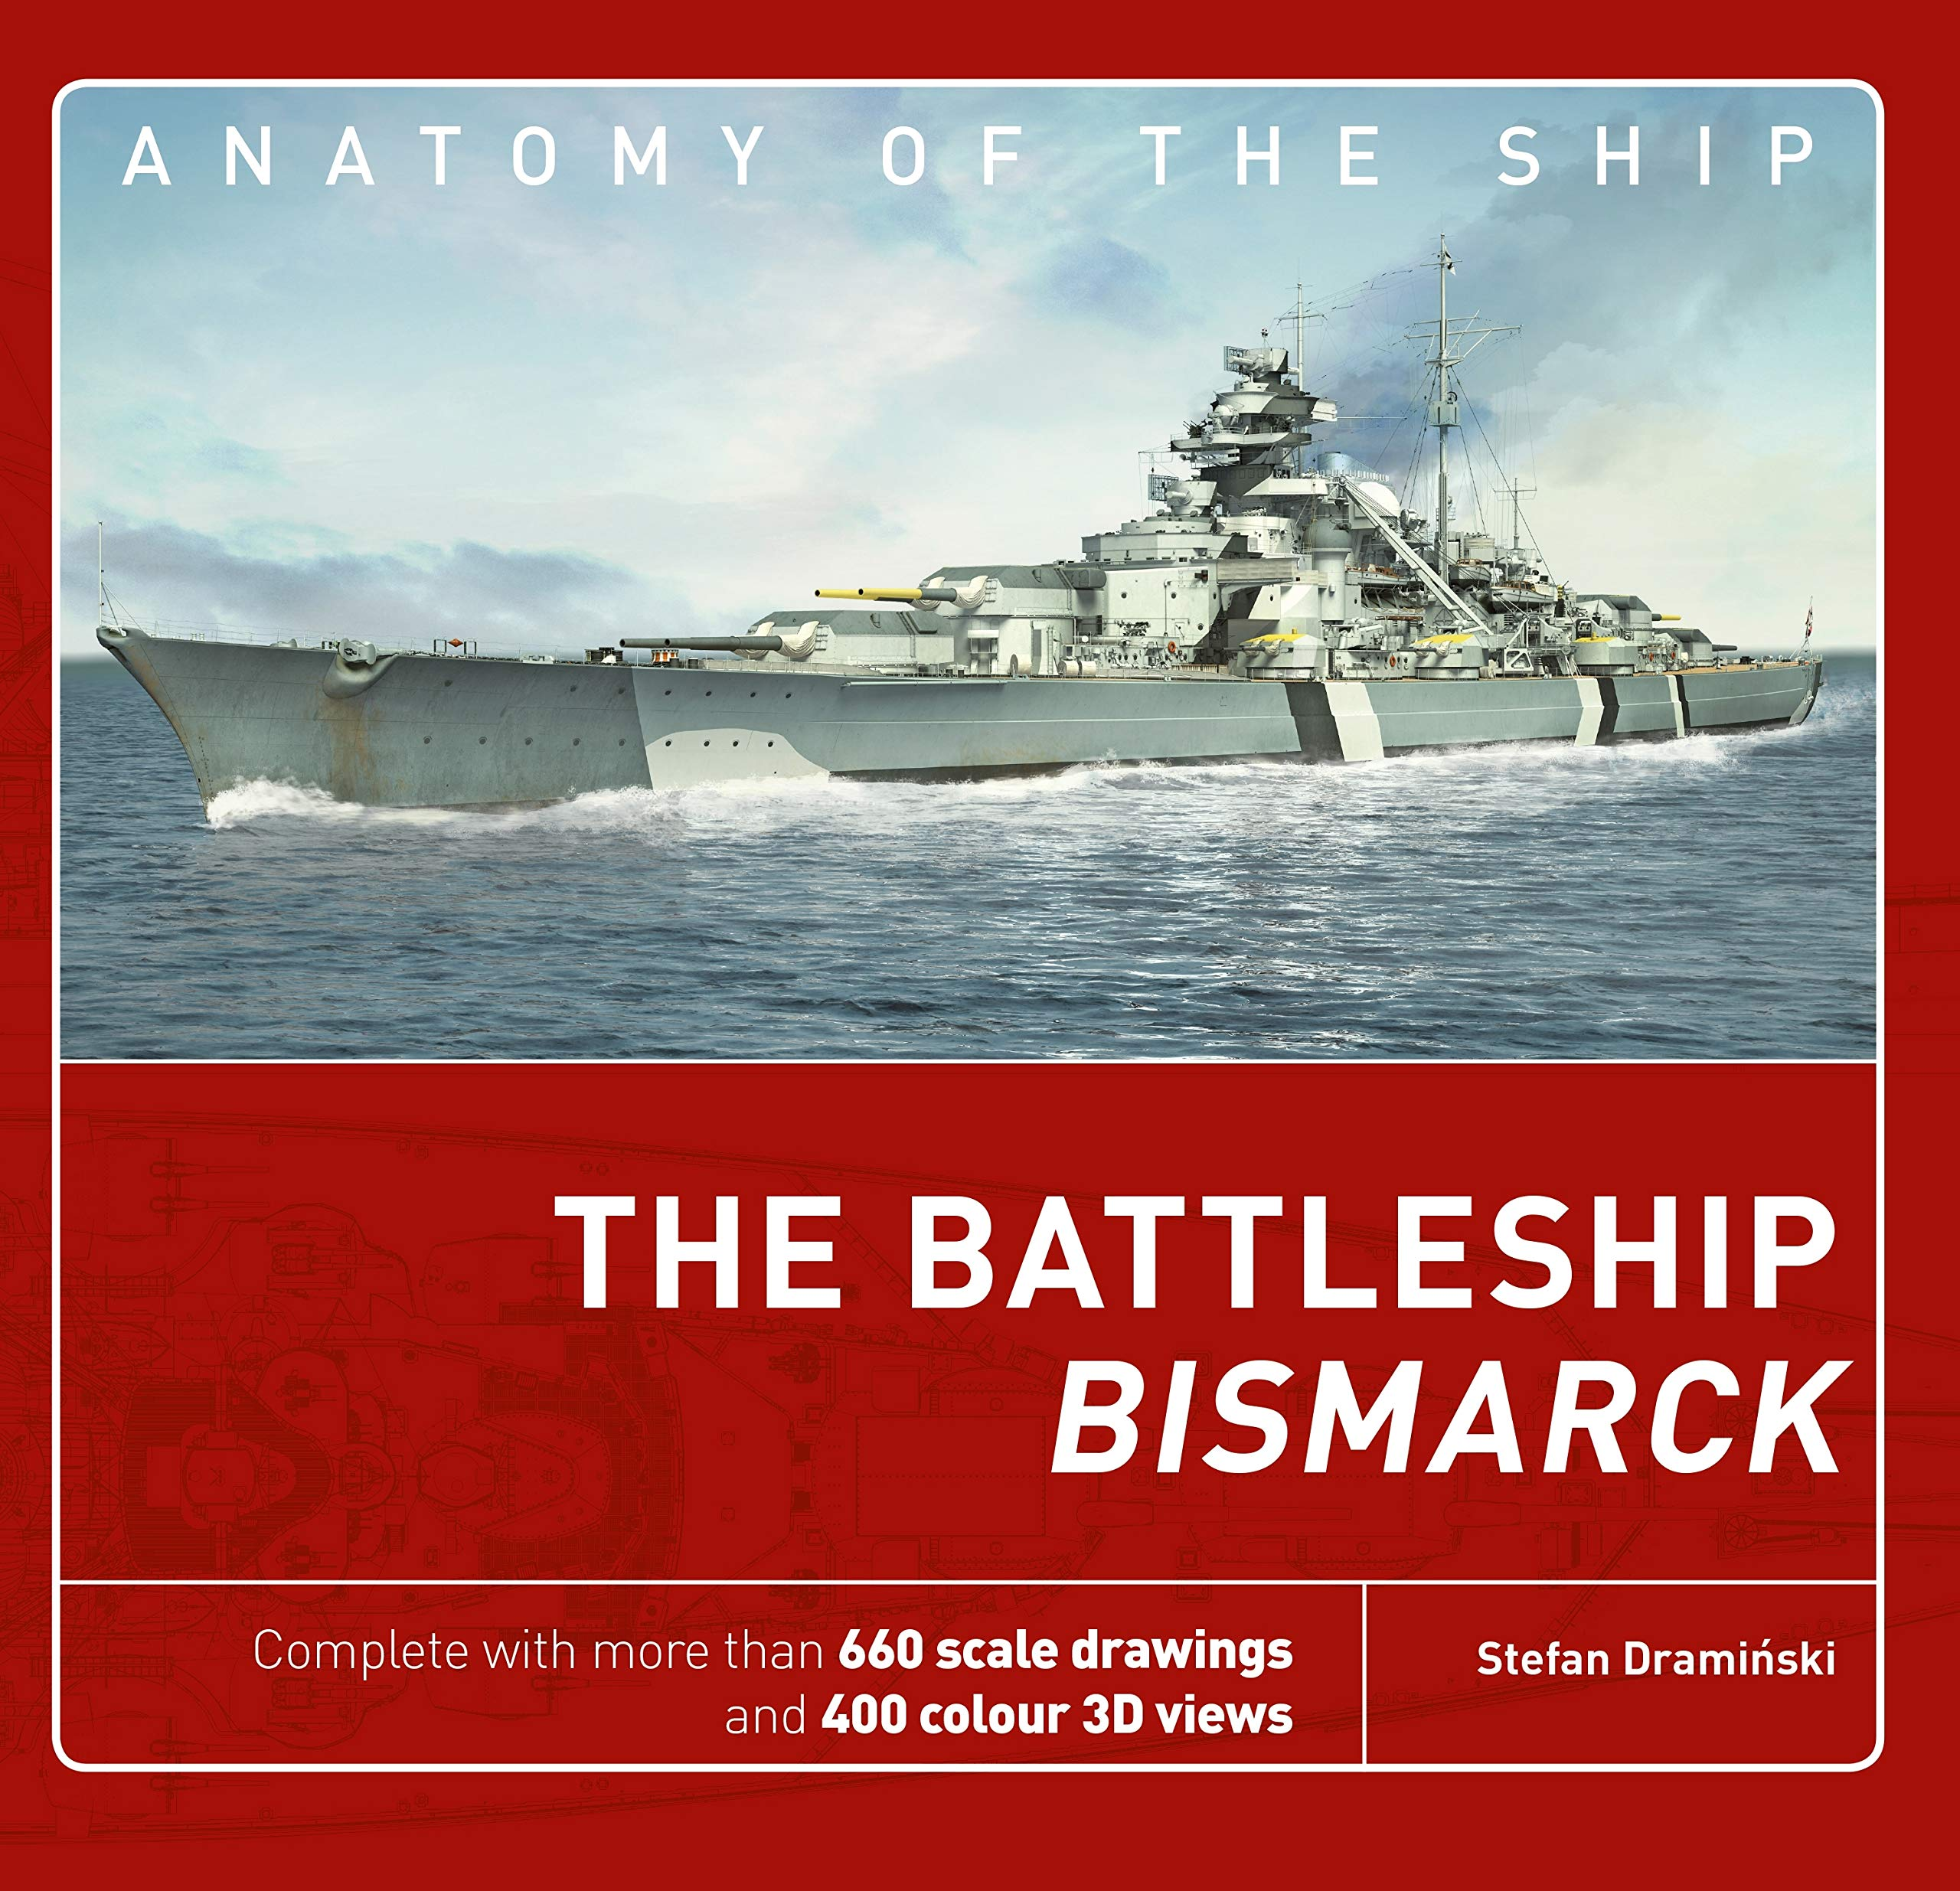 amazon the battleship bismarck anatomy of the ship stefan